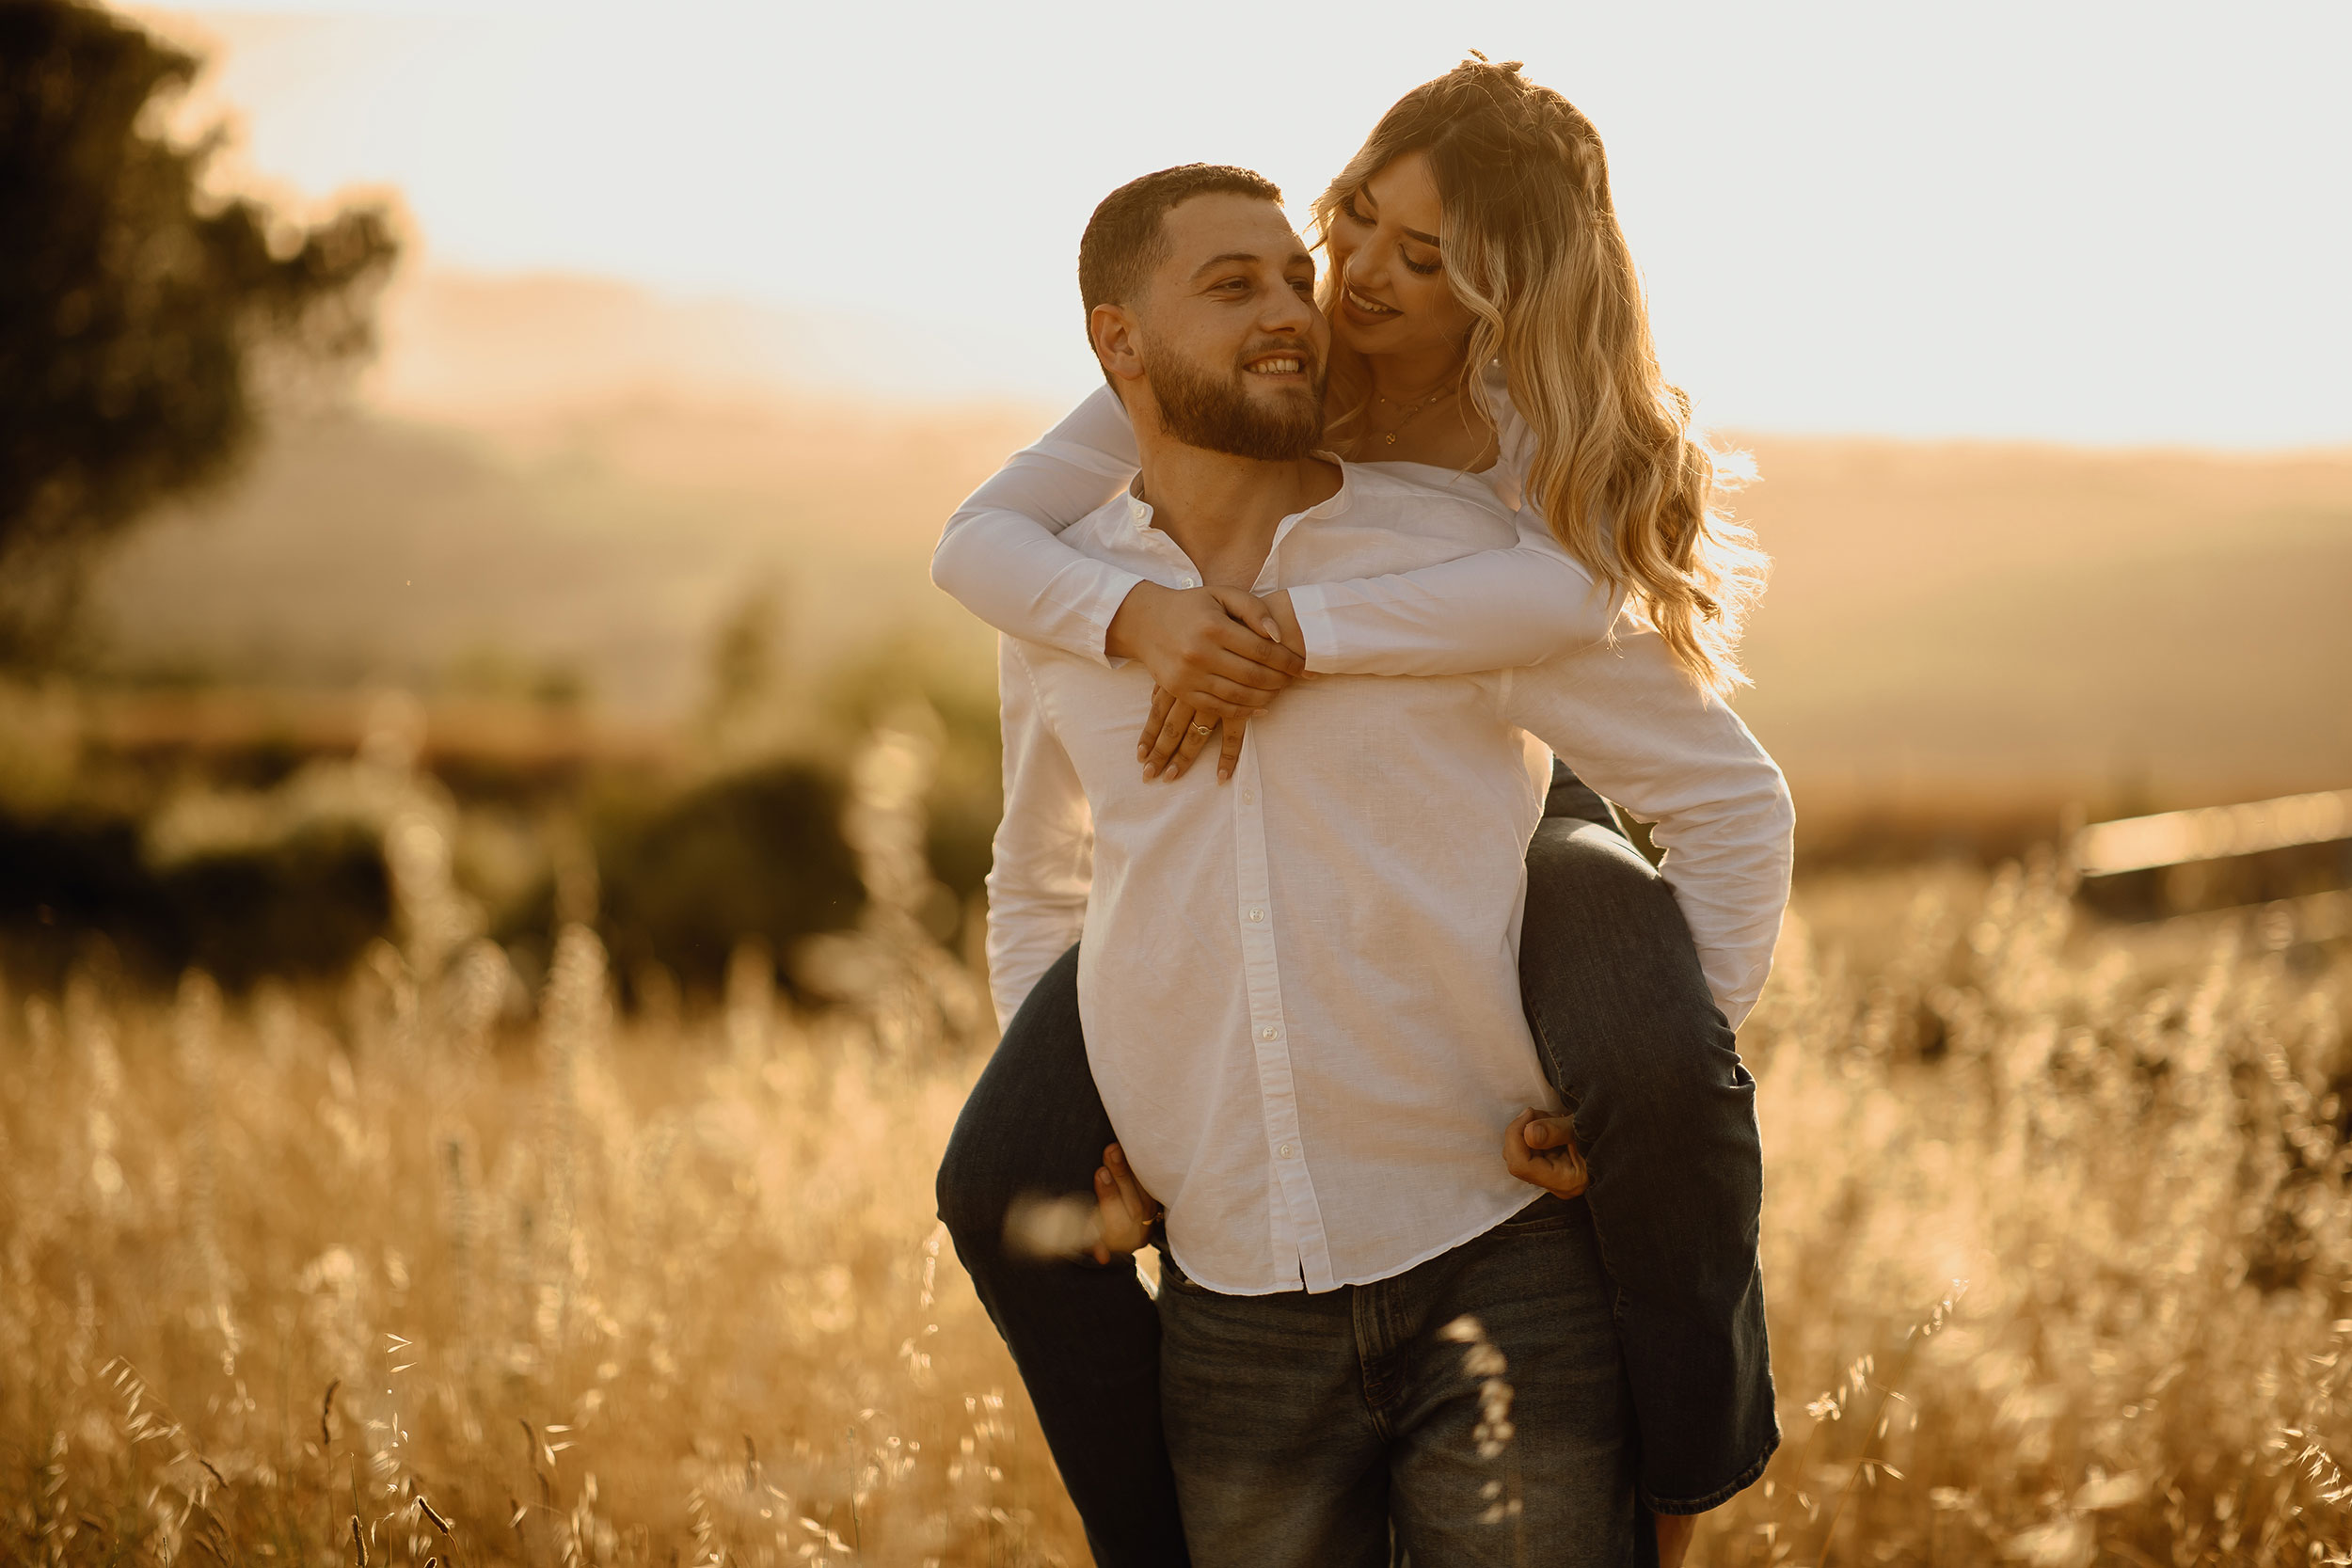 Couple photoshoot in nature